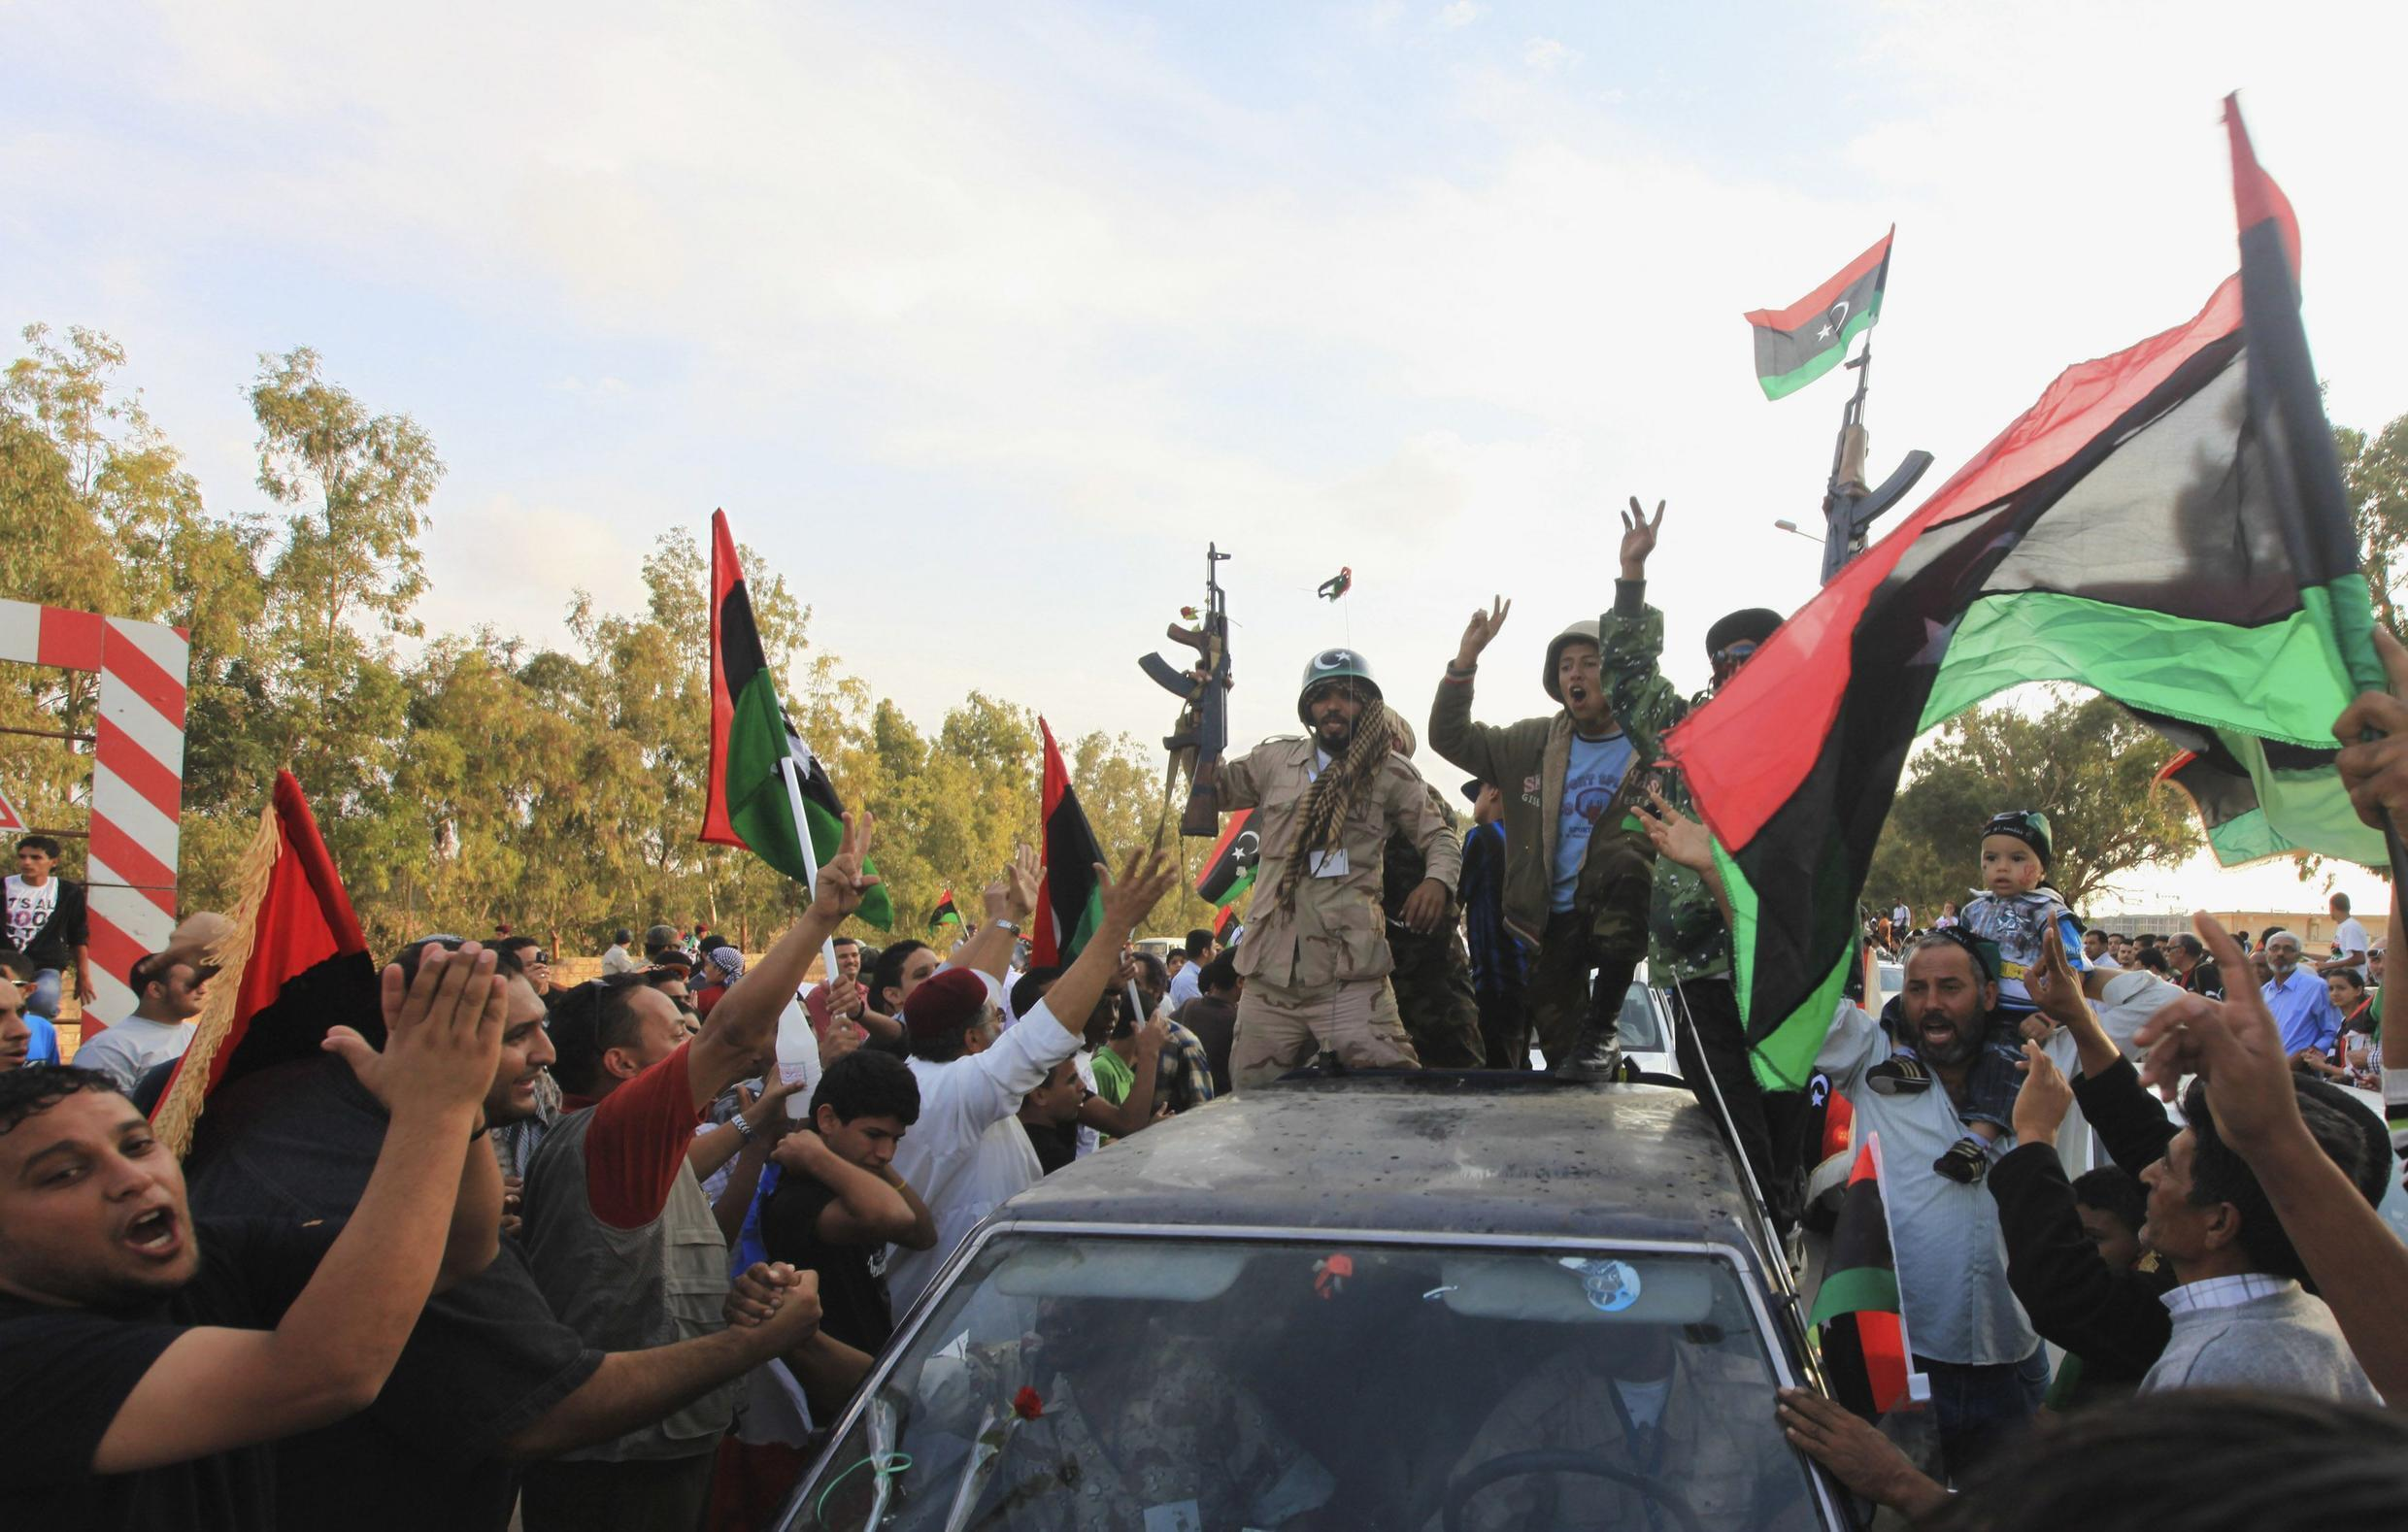 Fighters from Sirte arrive in Benghazi, where the liberation declaration takes place